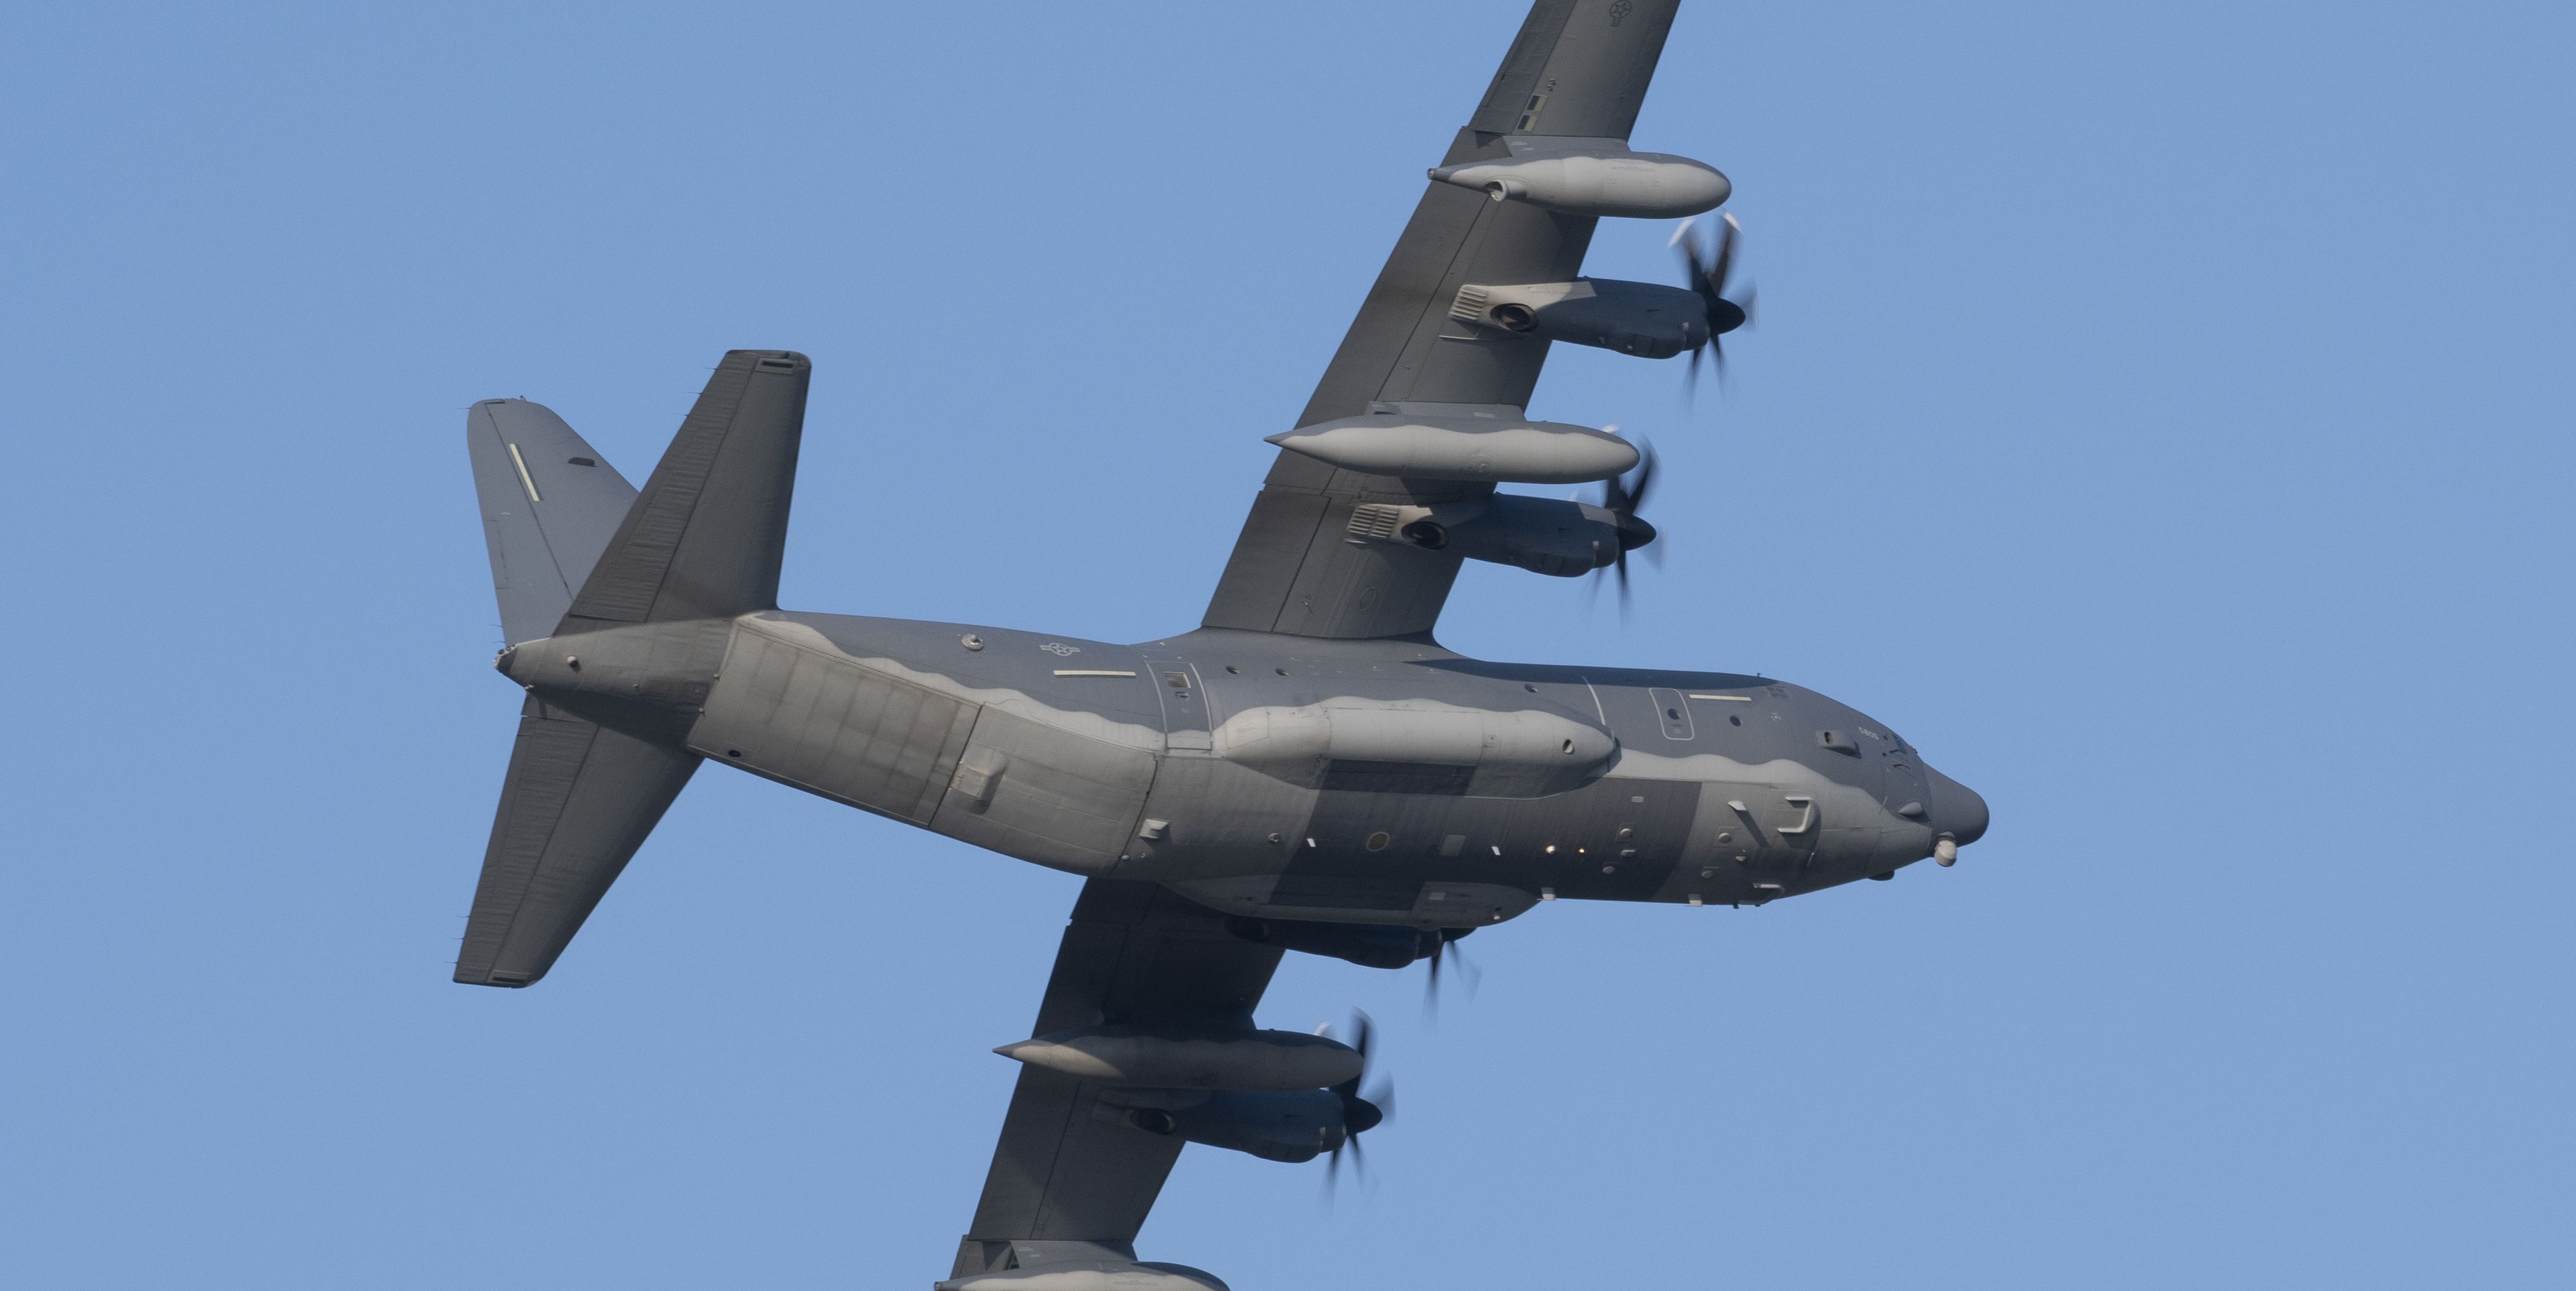 Watch Four Air Force Transports Thread Through a Valley